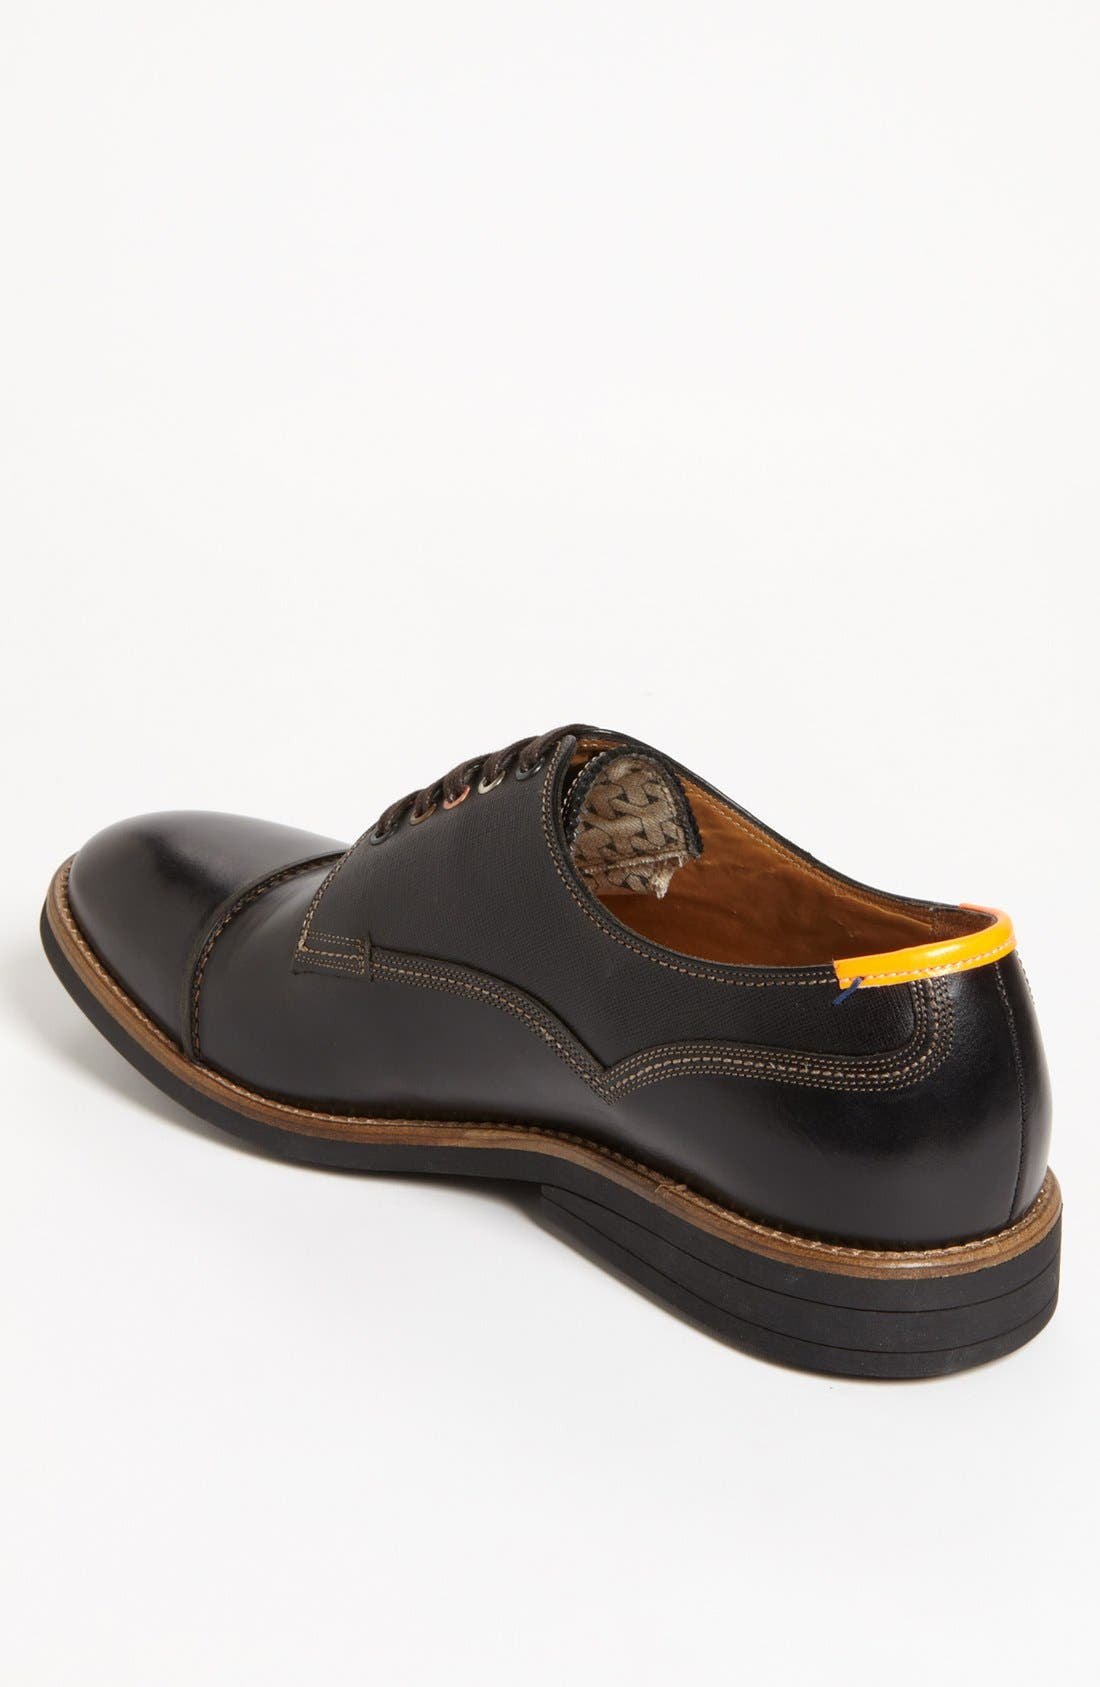 Alternate Image 2  - Paul Smith 'Skull' Cap Toe Derby